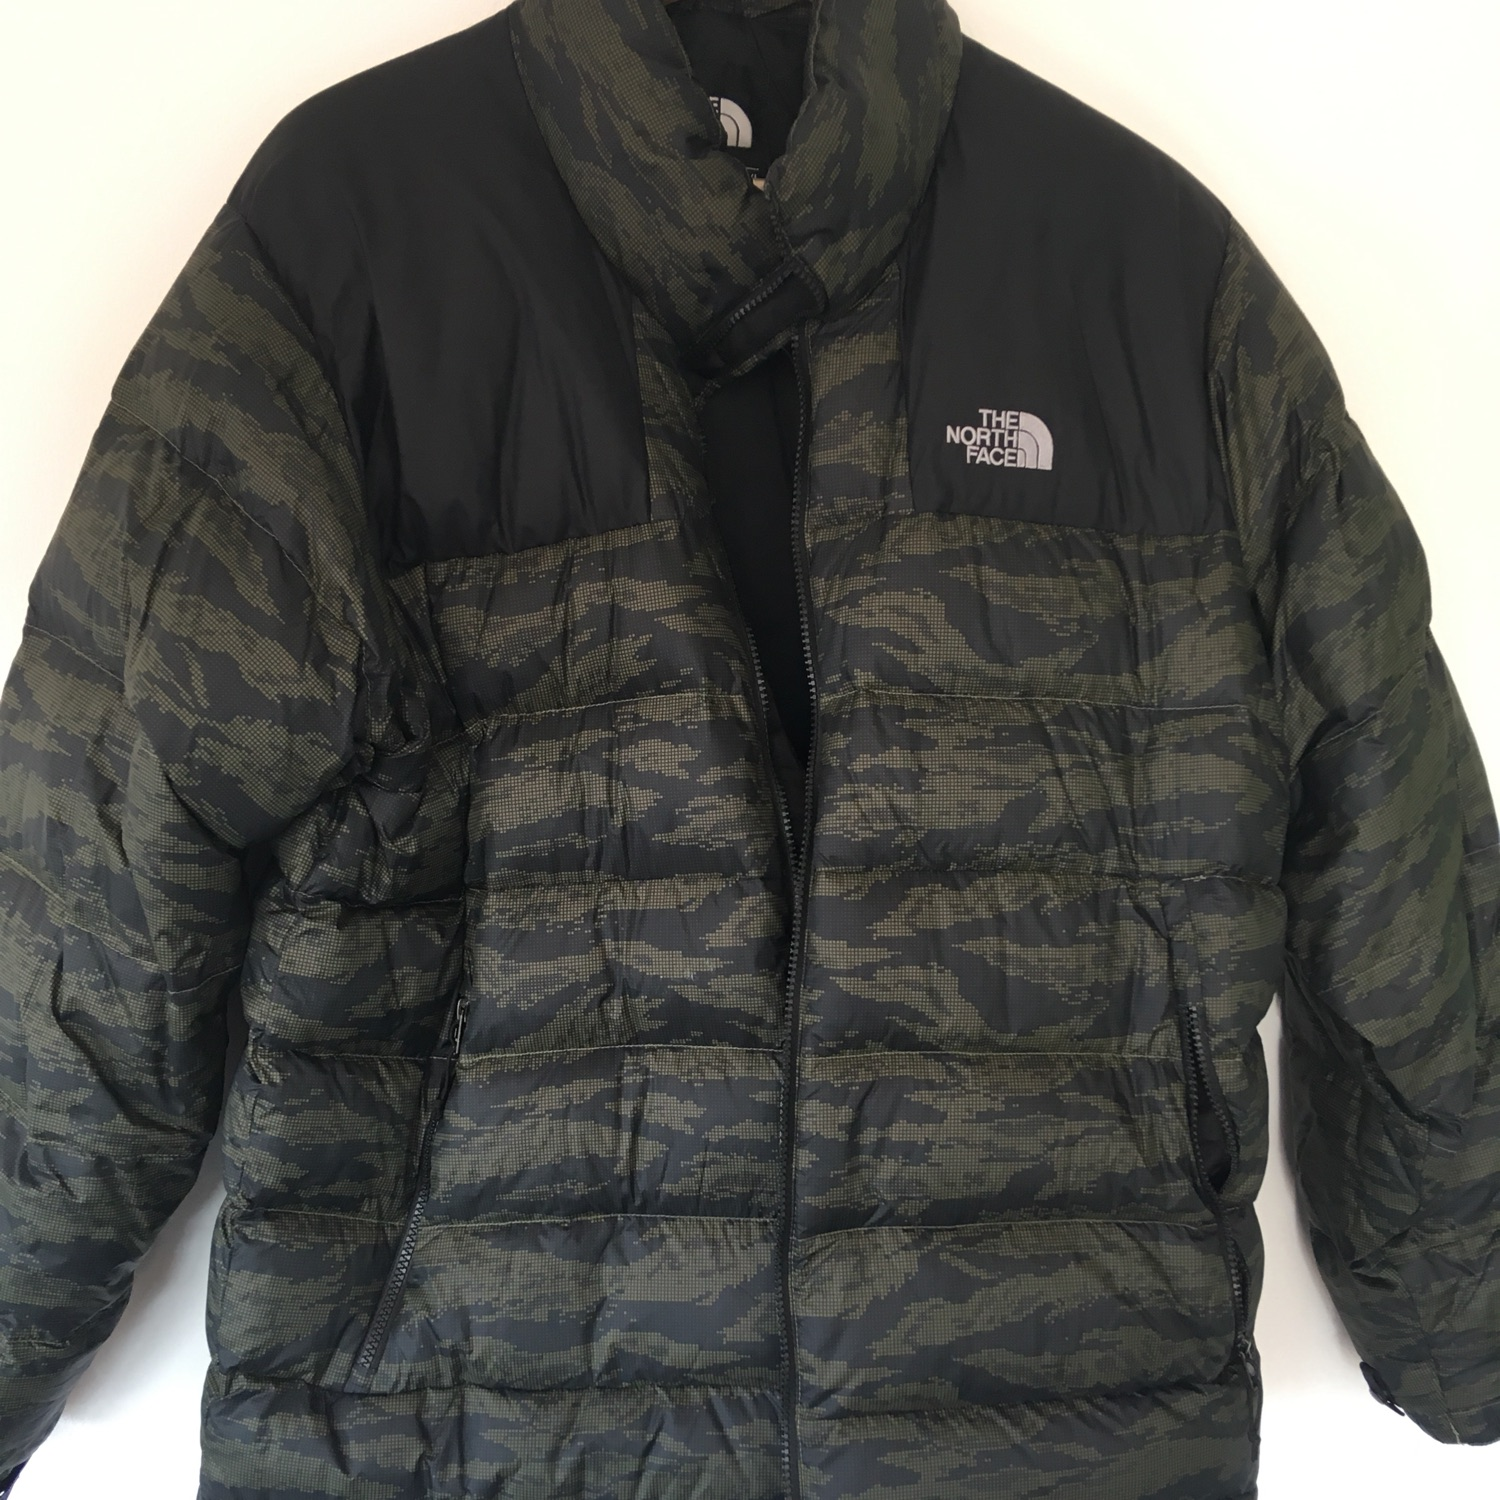 reputable site 21d89 001f6 The North Face Jacke